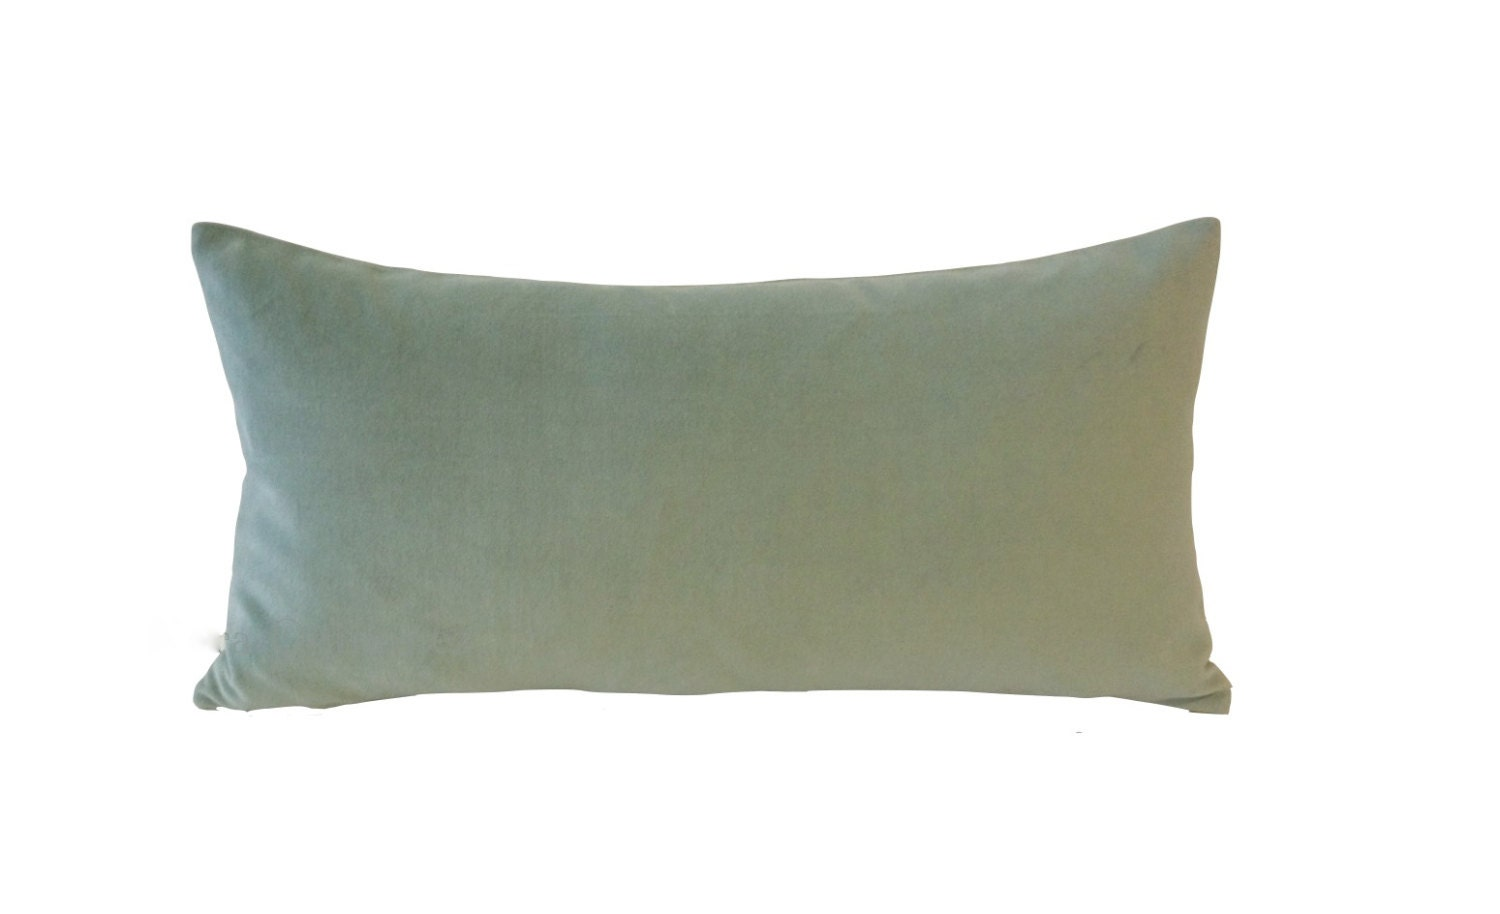 Decorative Bolster Pillow Covers : Seafoam Green Decorative Bolster Pillow Cover 10x20 TO 12x24